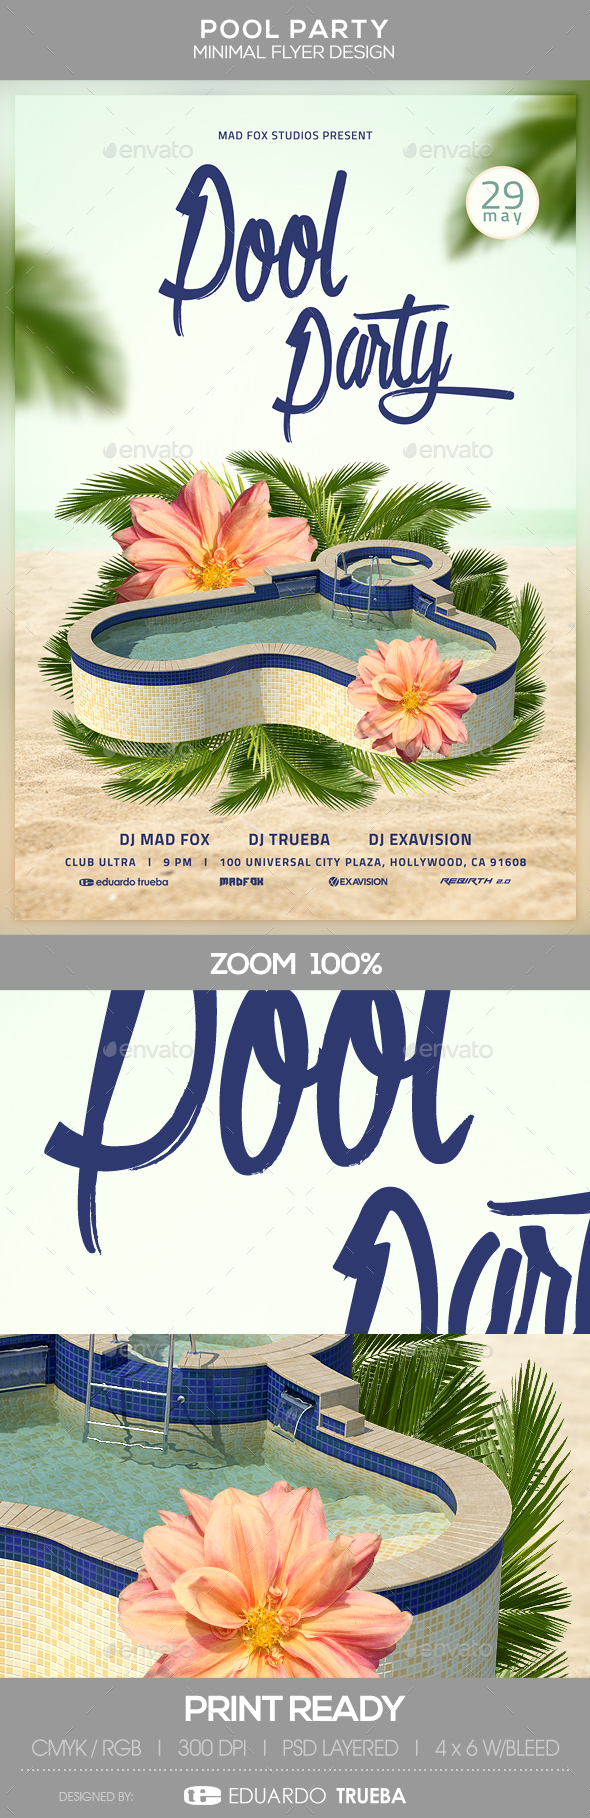 Pool Party Minimal Flyer Design - Events Flyers